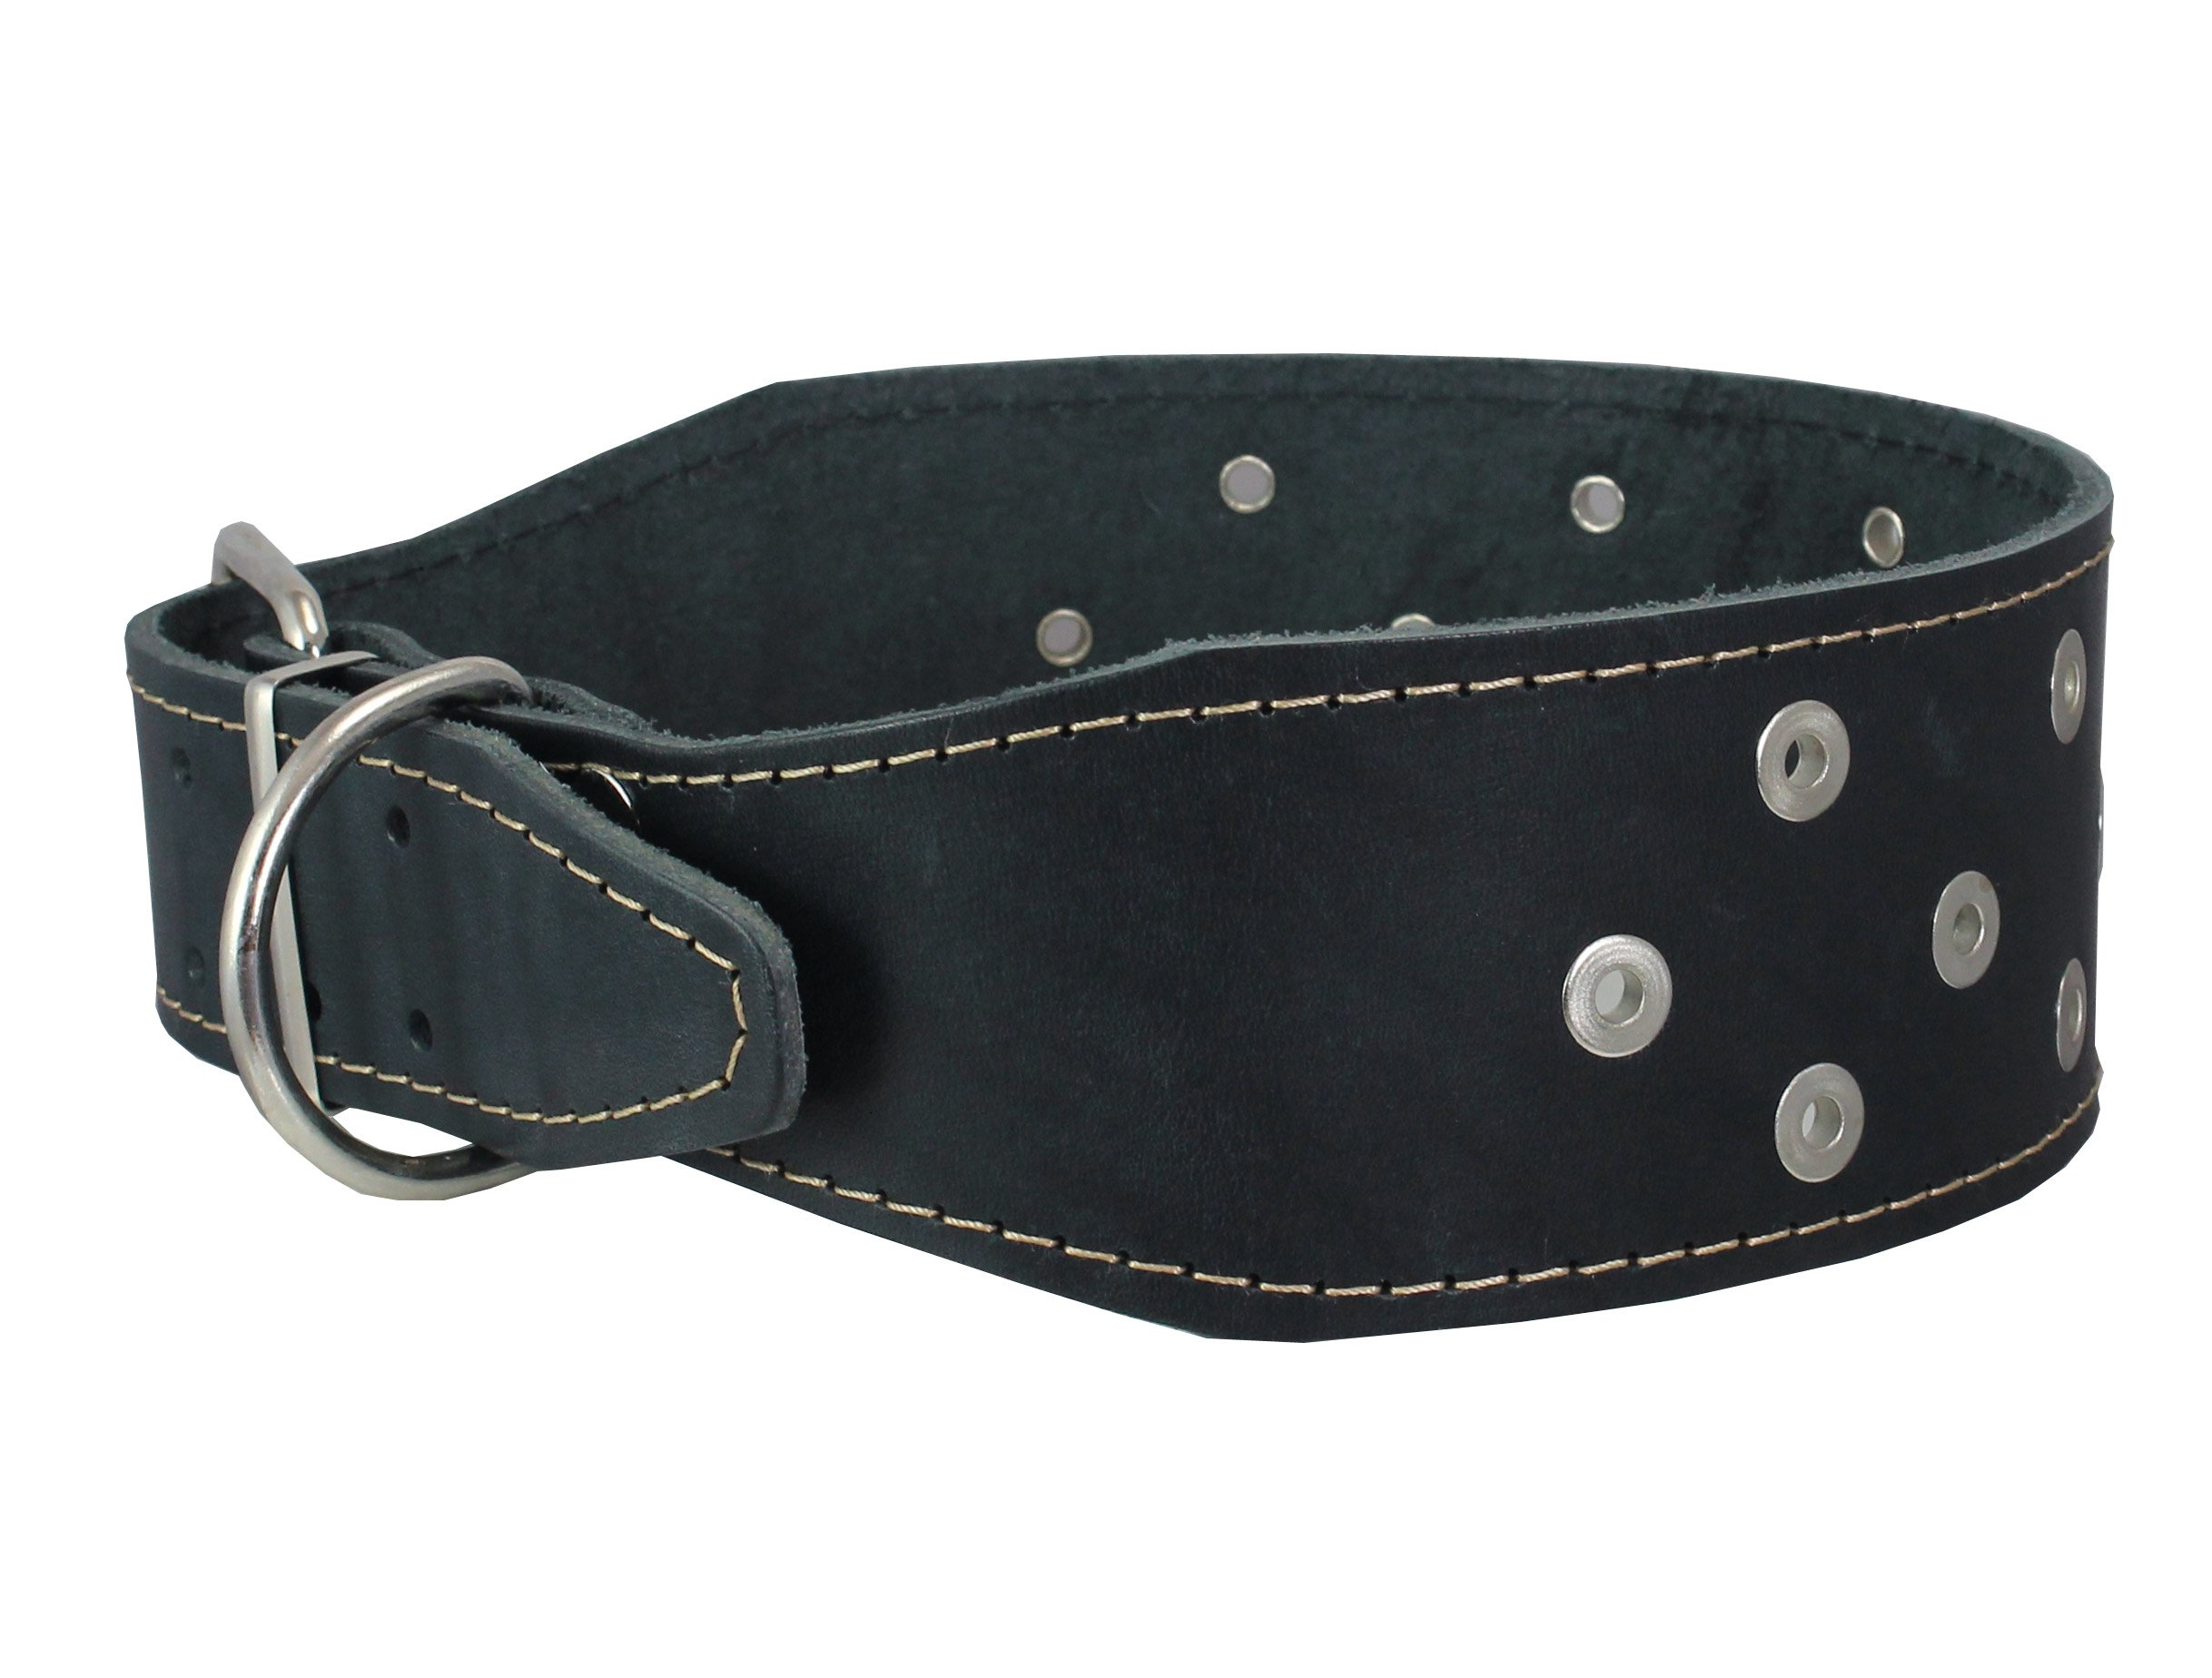 Dogs My Love 3'' Extra Wide Heavy Duty Genuine Leather Studded Black Leather Collar. Fits 19''-23'' Neck. for Large Breeds - Pitbull, American Staffordshire